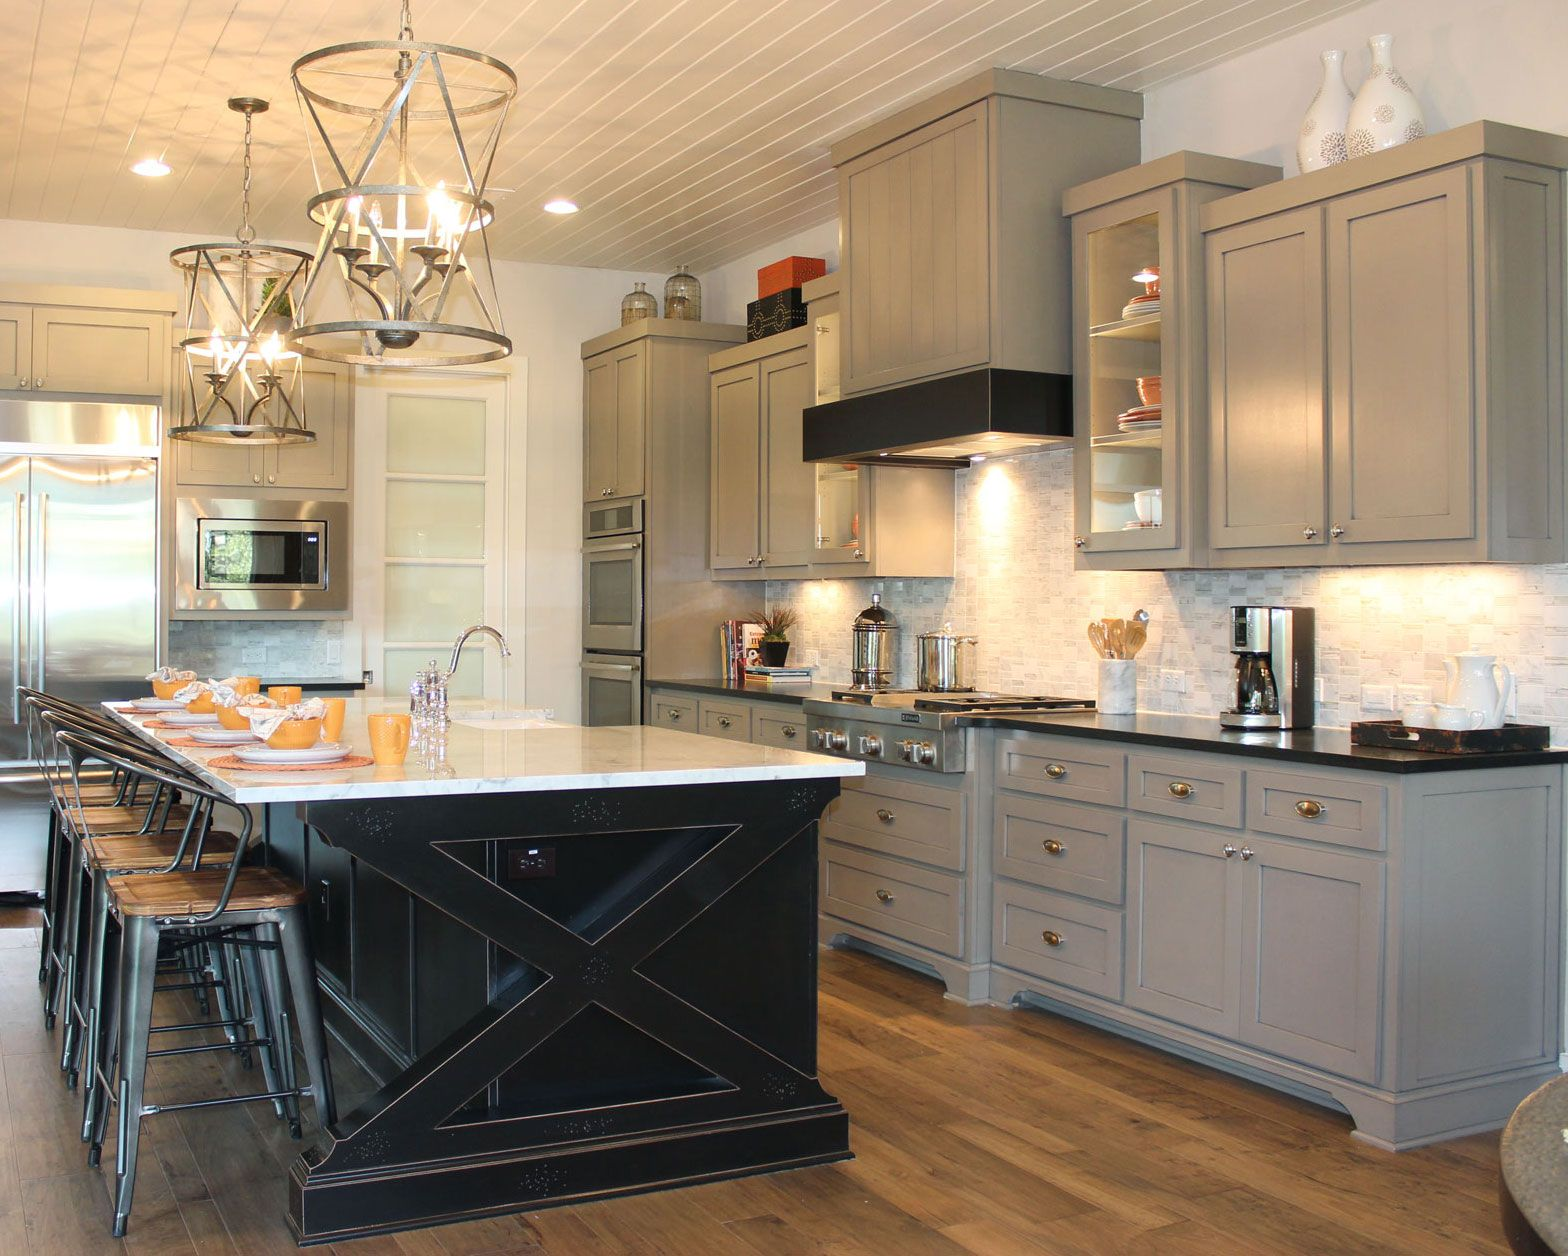 kitchen cabinets contrasting color frame and doors examples google search black kitchen on kitchen cabinet color ideas id=98540